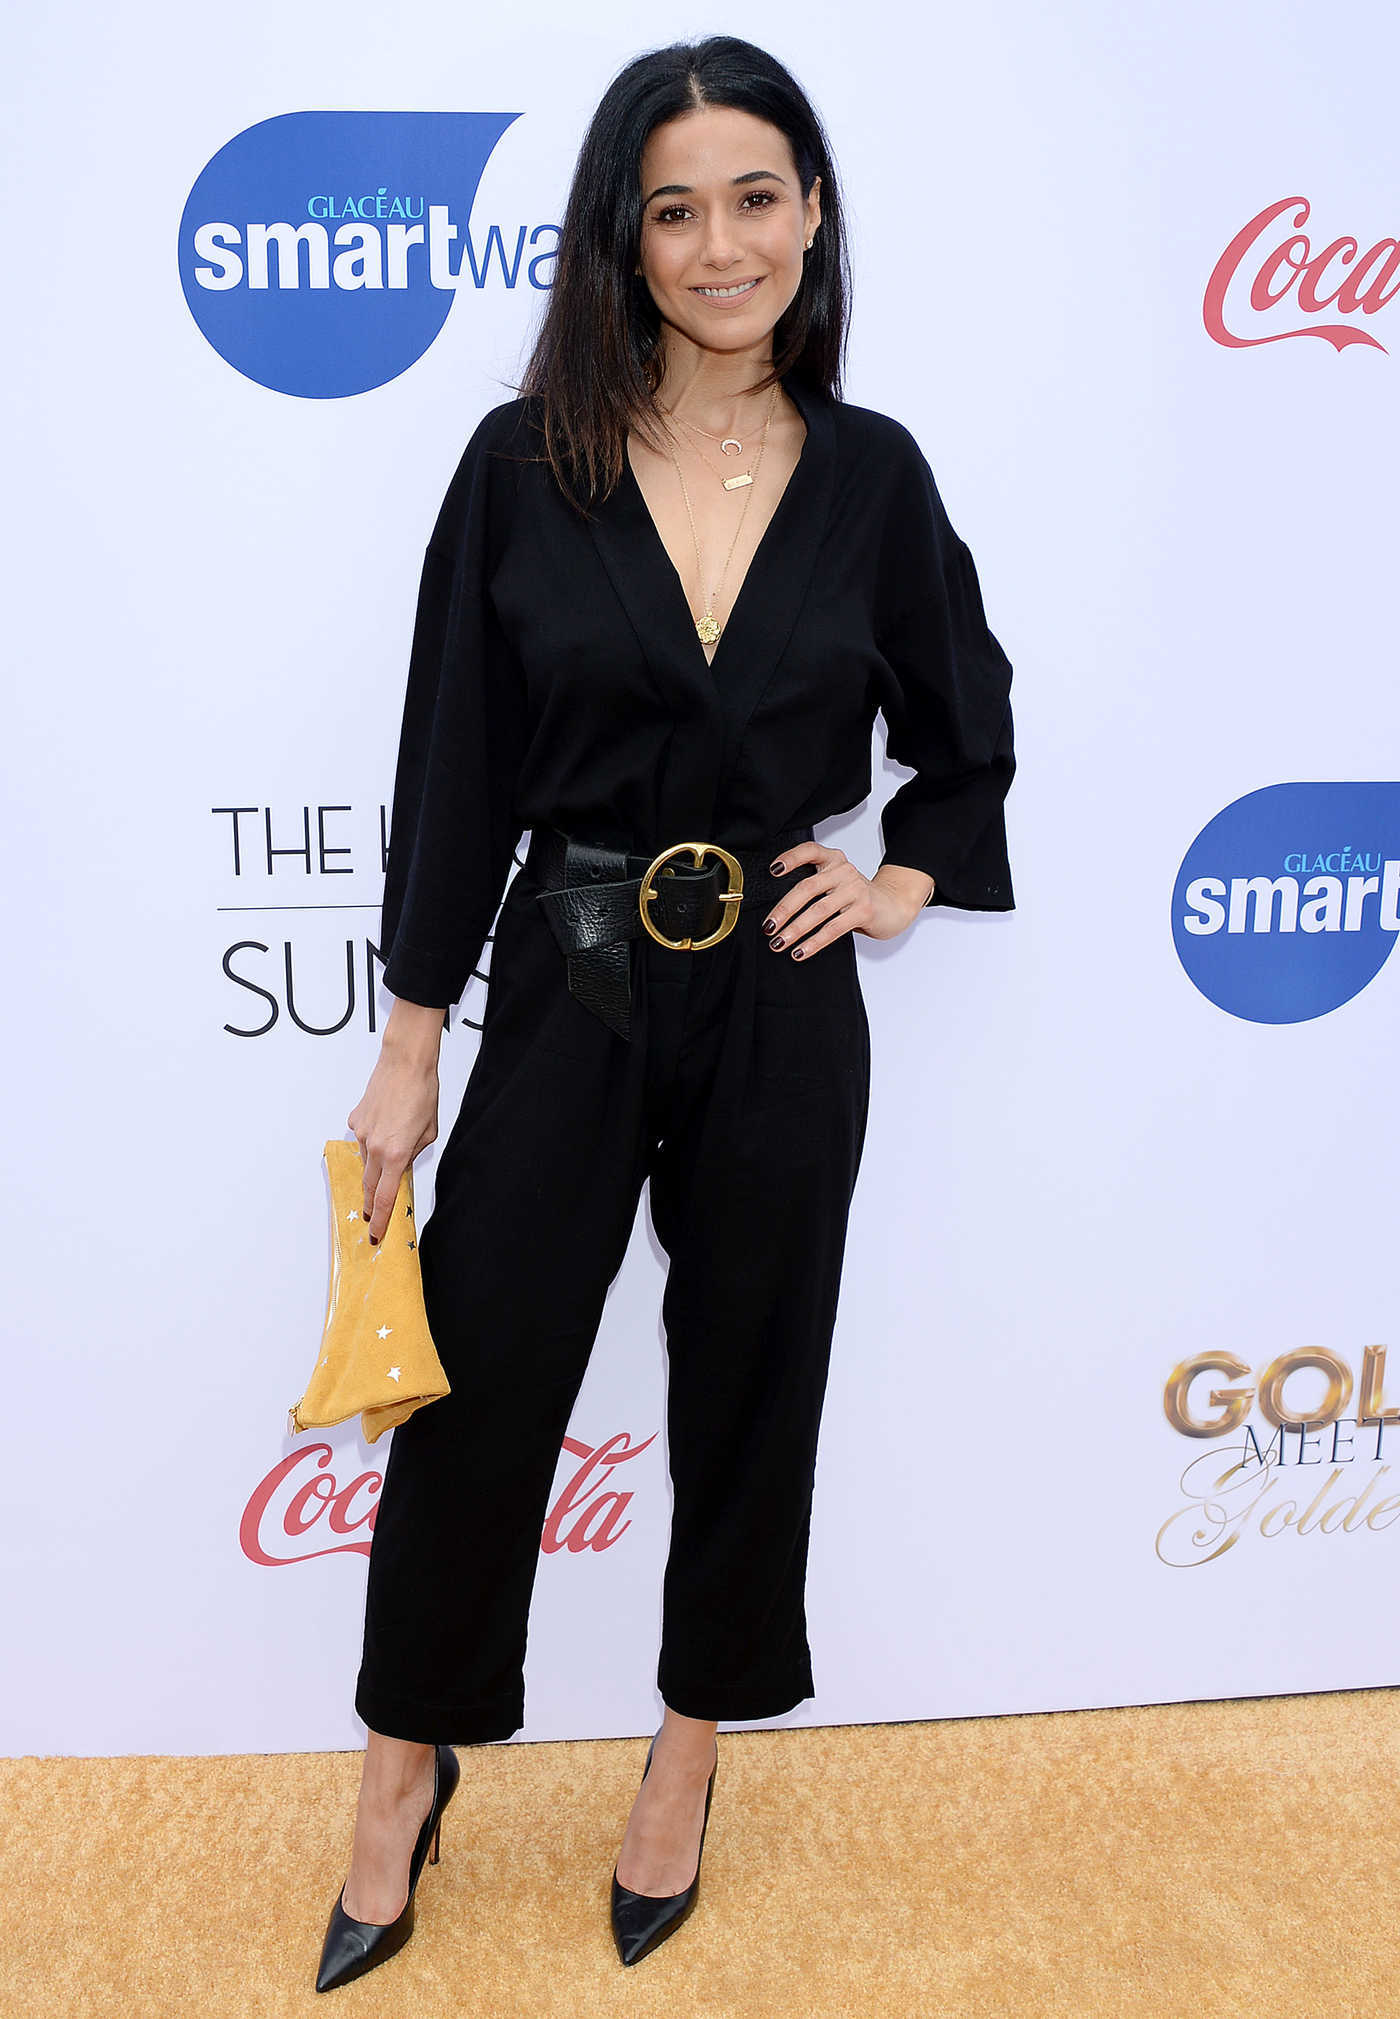 Emmanuelle Chriqui Attends the 6th Annual Gold Meets Golden Brunch in LA 01/05/2019